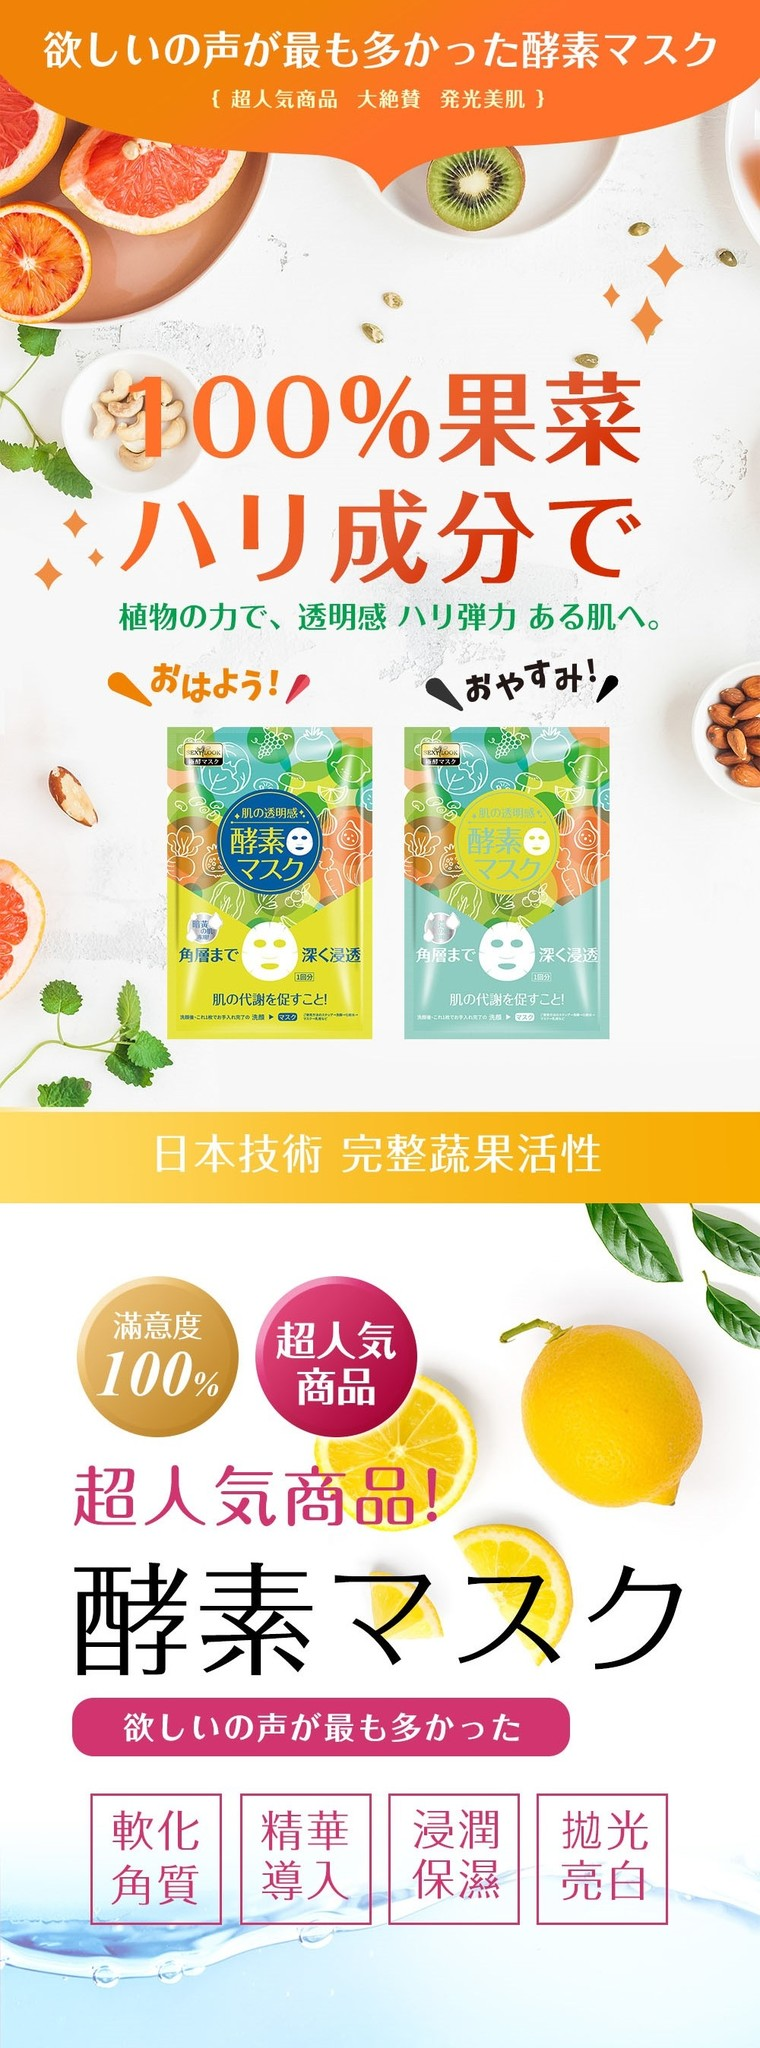 Enzyme Brightening Facial Mask-7